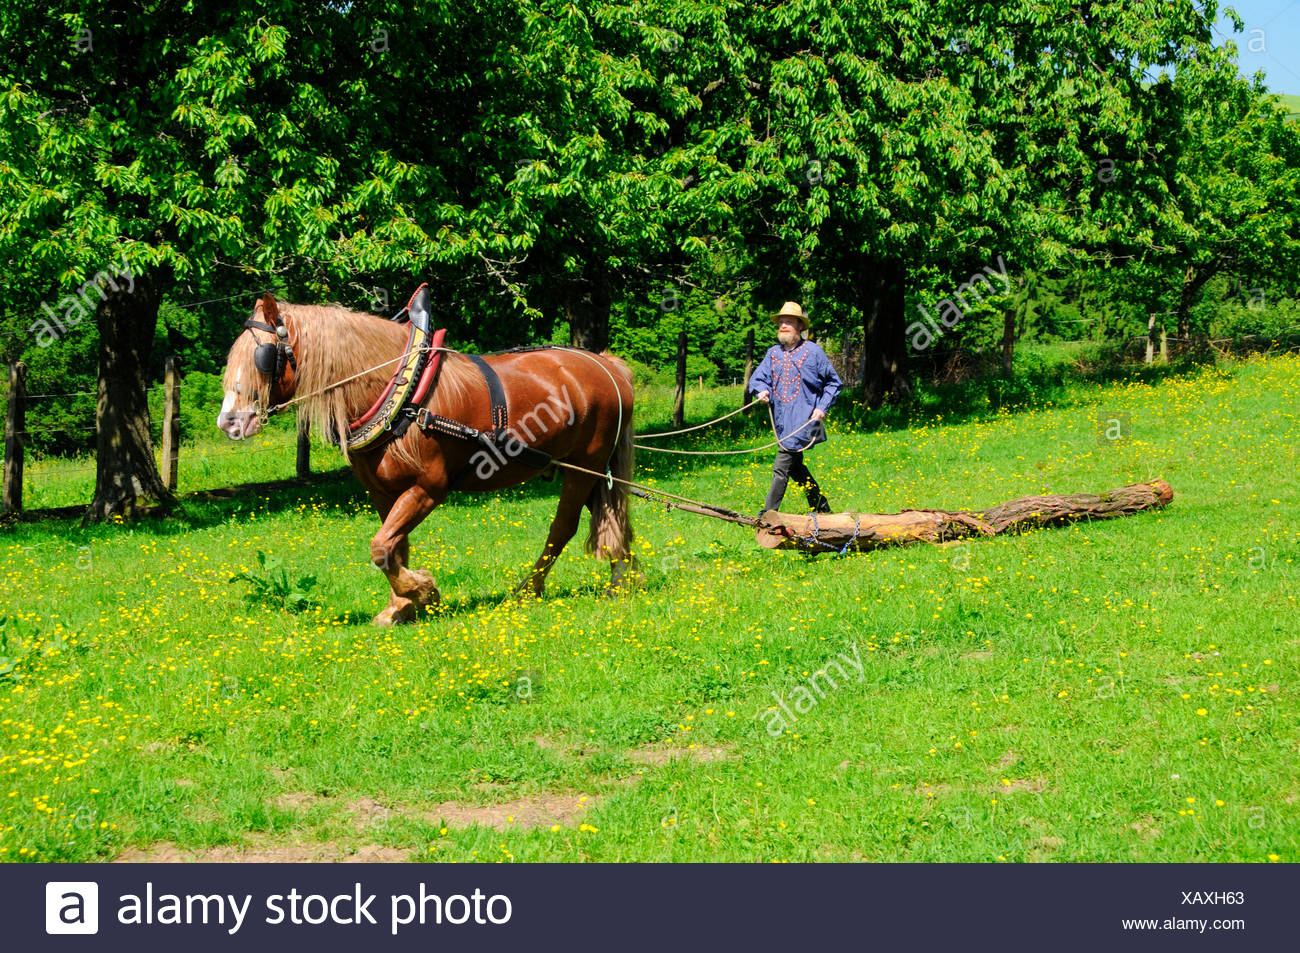 Black Forest Heavy Draught Draft Horse Draught Horse Pulling Tree Tradtitional Gear Stock Photo Alamy